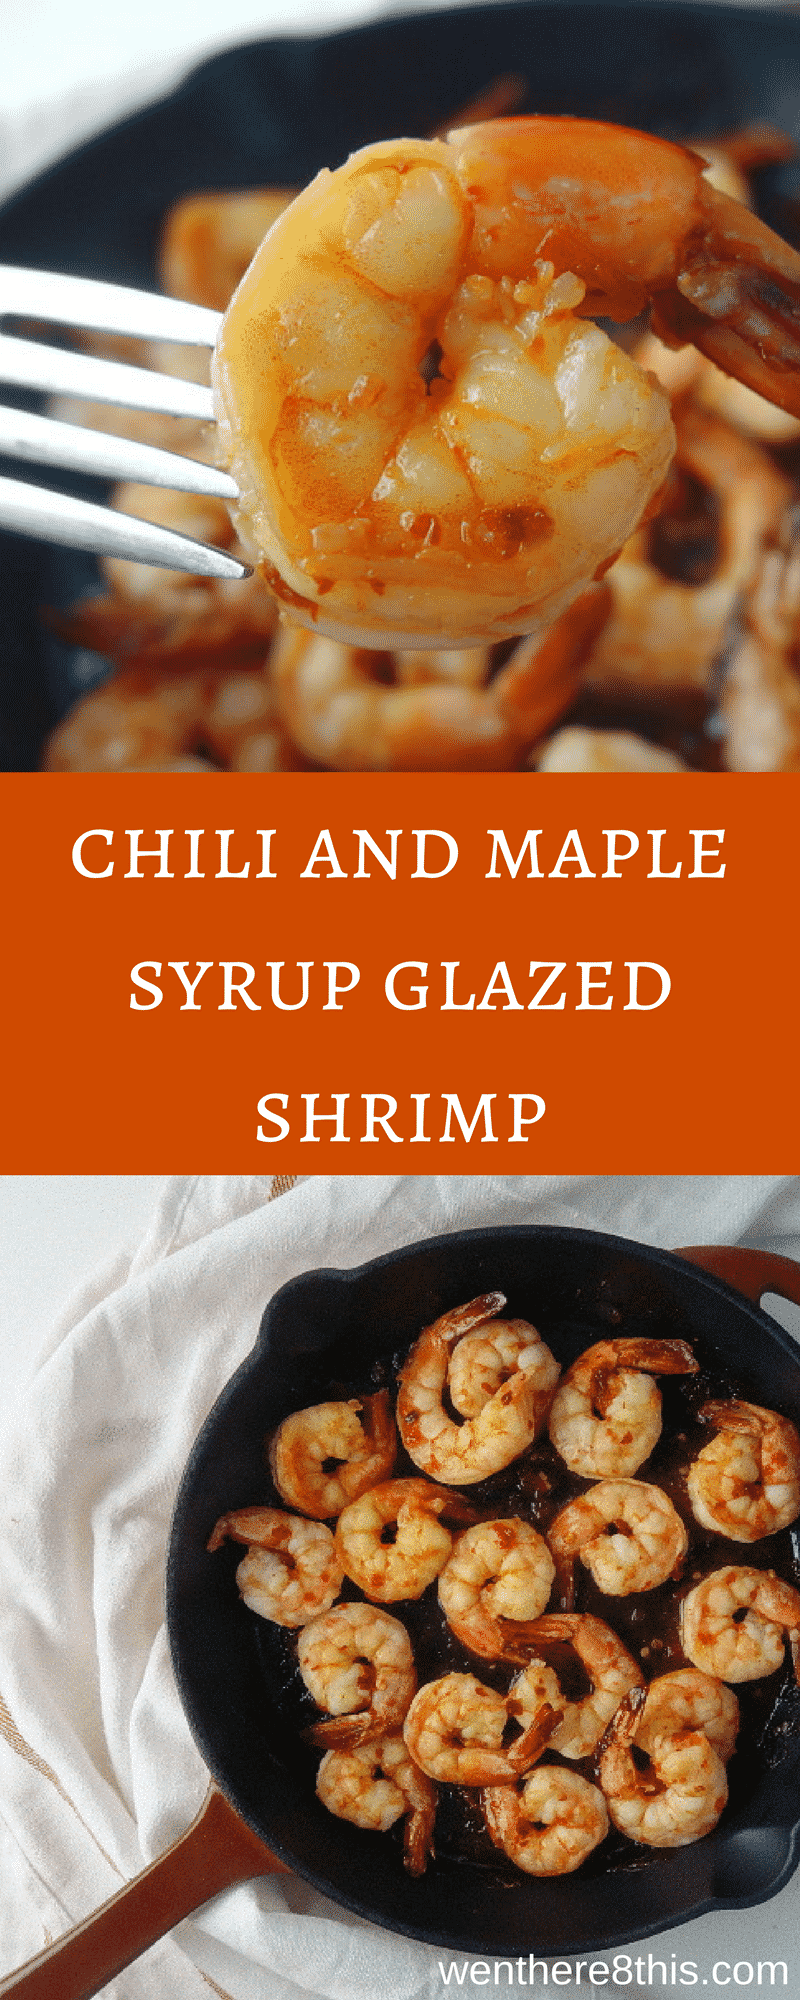 Try this quick and easy 4 ingredient chili and maple syrup glazed shrimp for a perfectly healthy weeknight meal! Delicious and healthy!maple glazed shrimp | sweet glazed shrimp recipe | chili maple shrimp recipe easy | easy shrimp recipe | spicy sweet glazed shrimp | spicy shrimp recipe | easy shrimp recipe | sweet glazed shrimp | healthy shrimp recipes | easy healthy shrimp